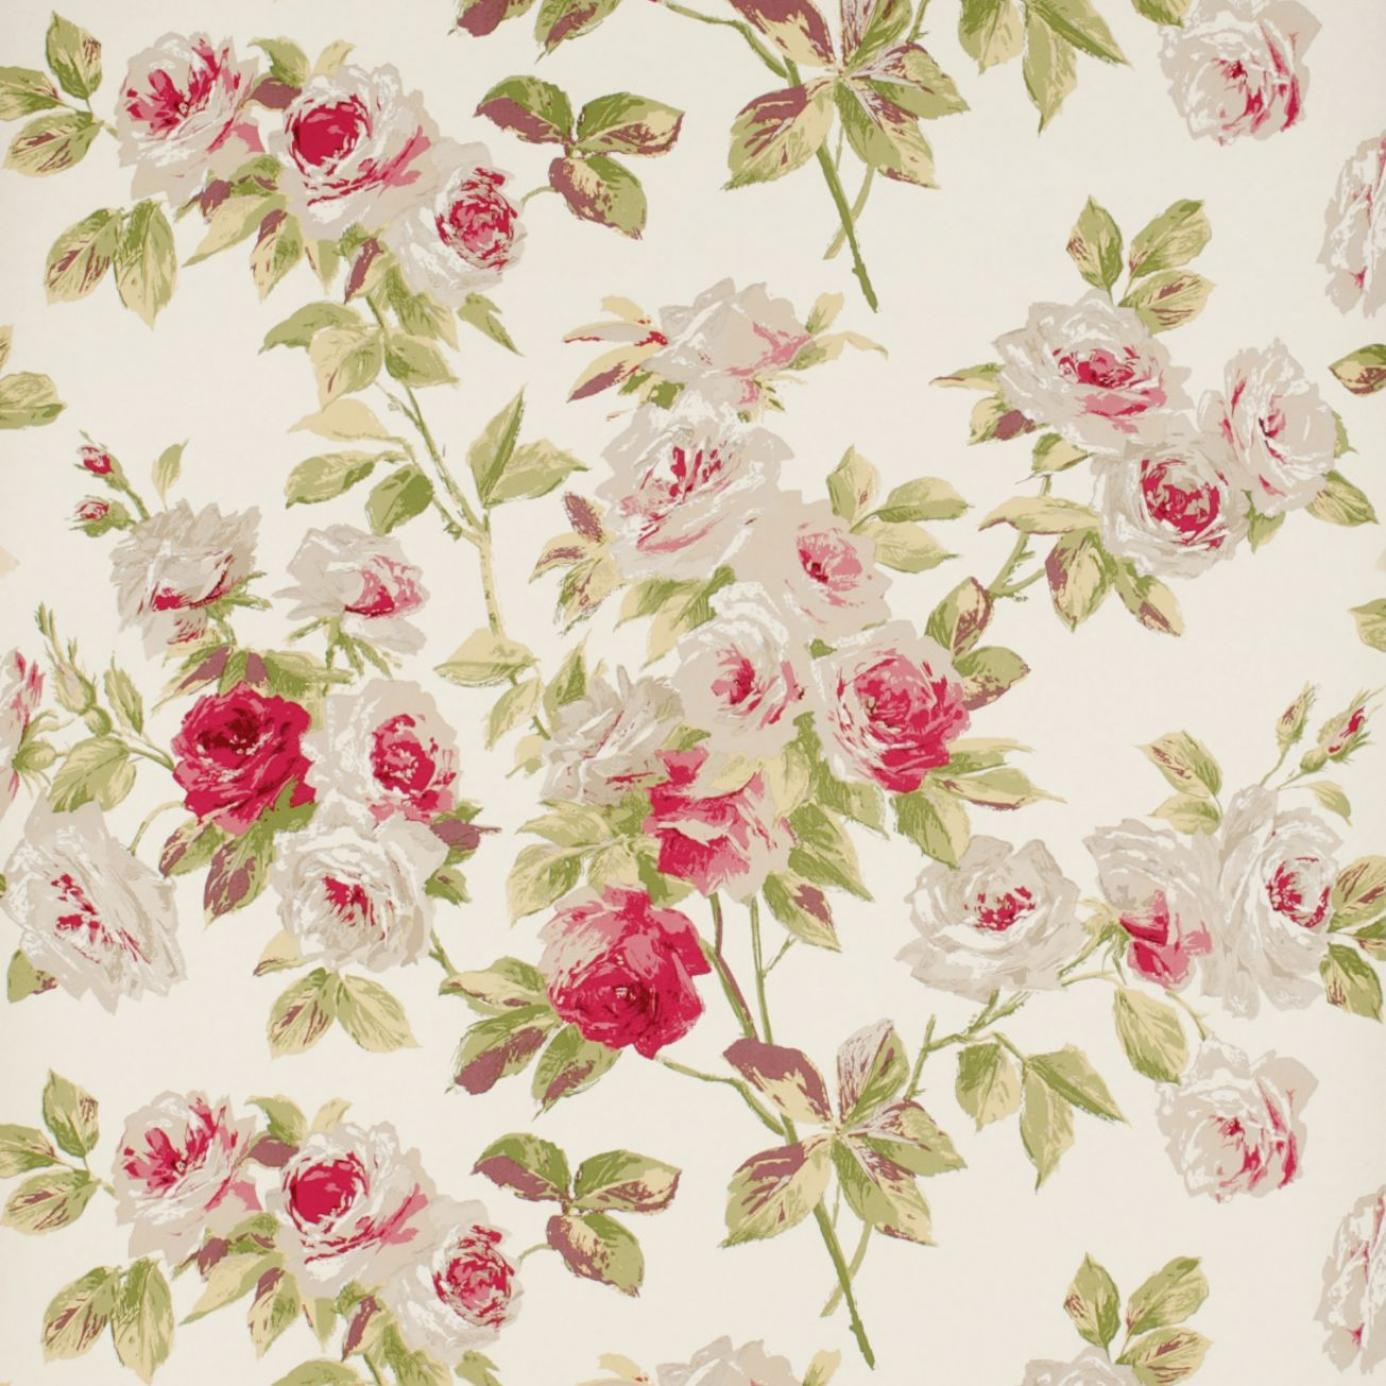 How to Choose vintage flower wallpaper Background for Your Computer Monitor?